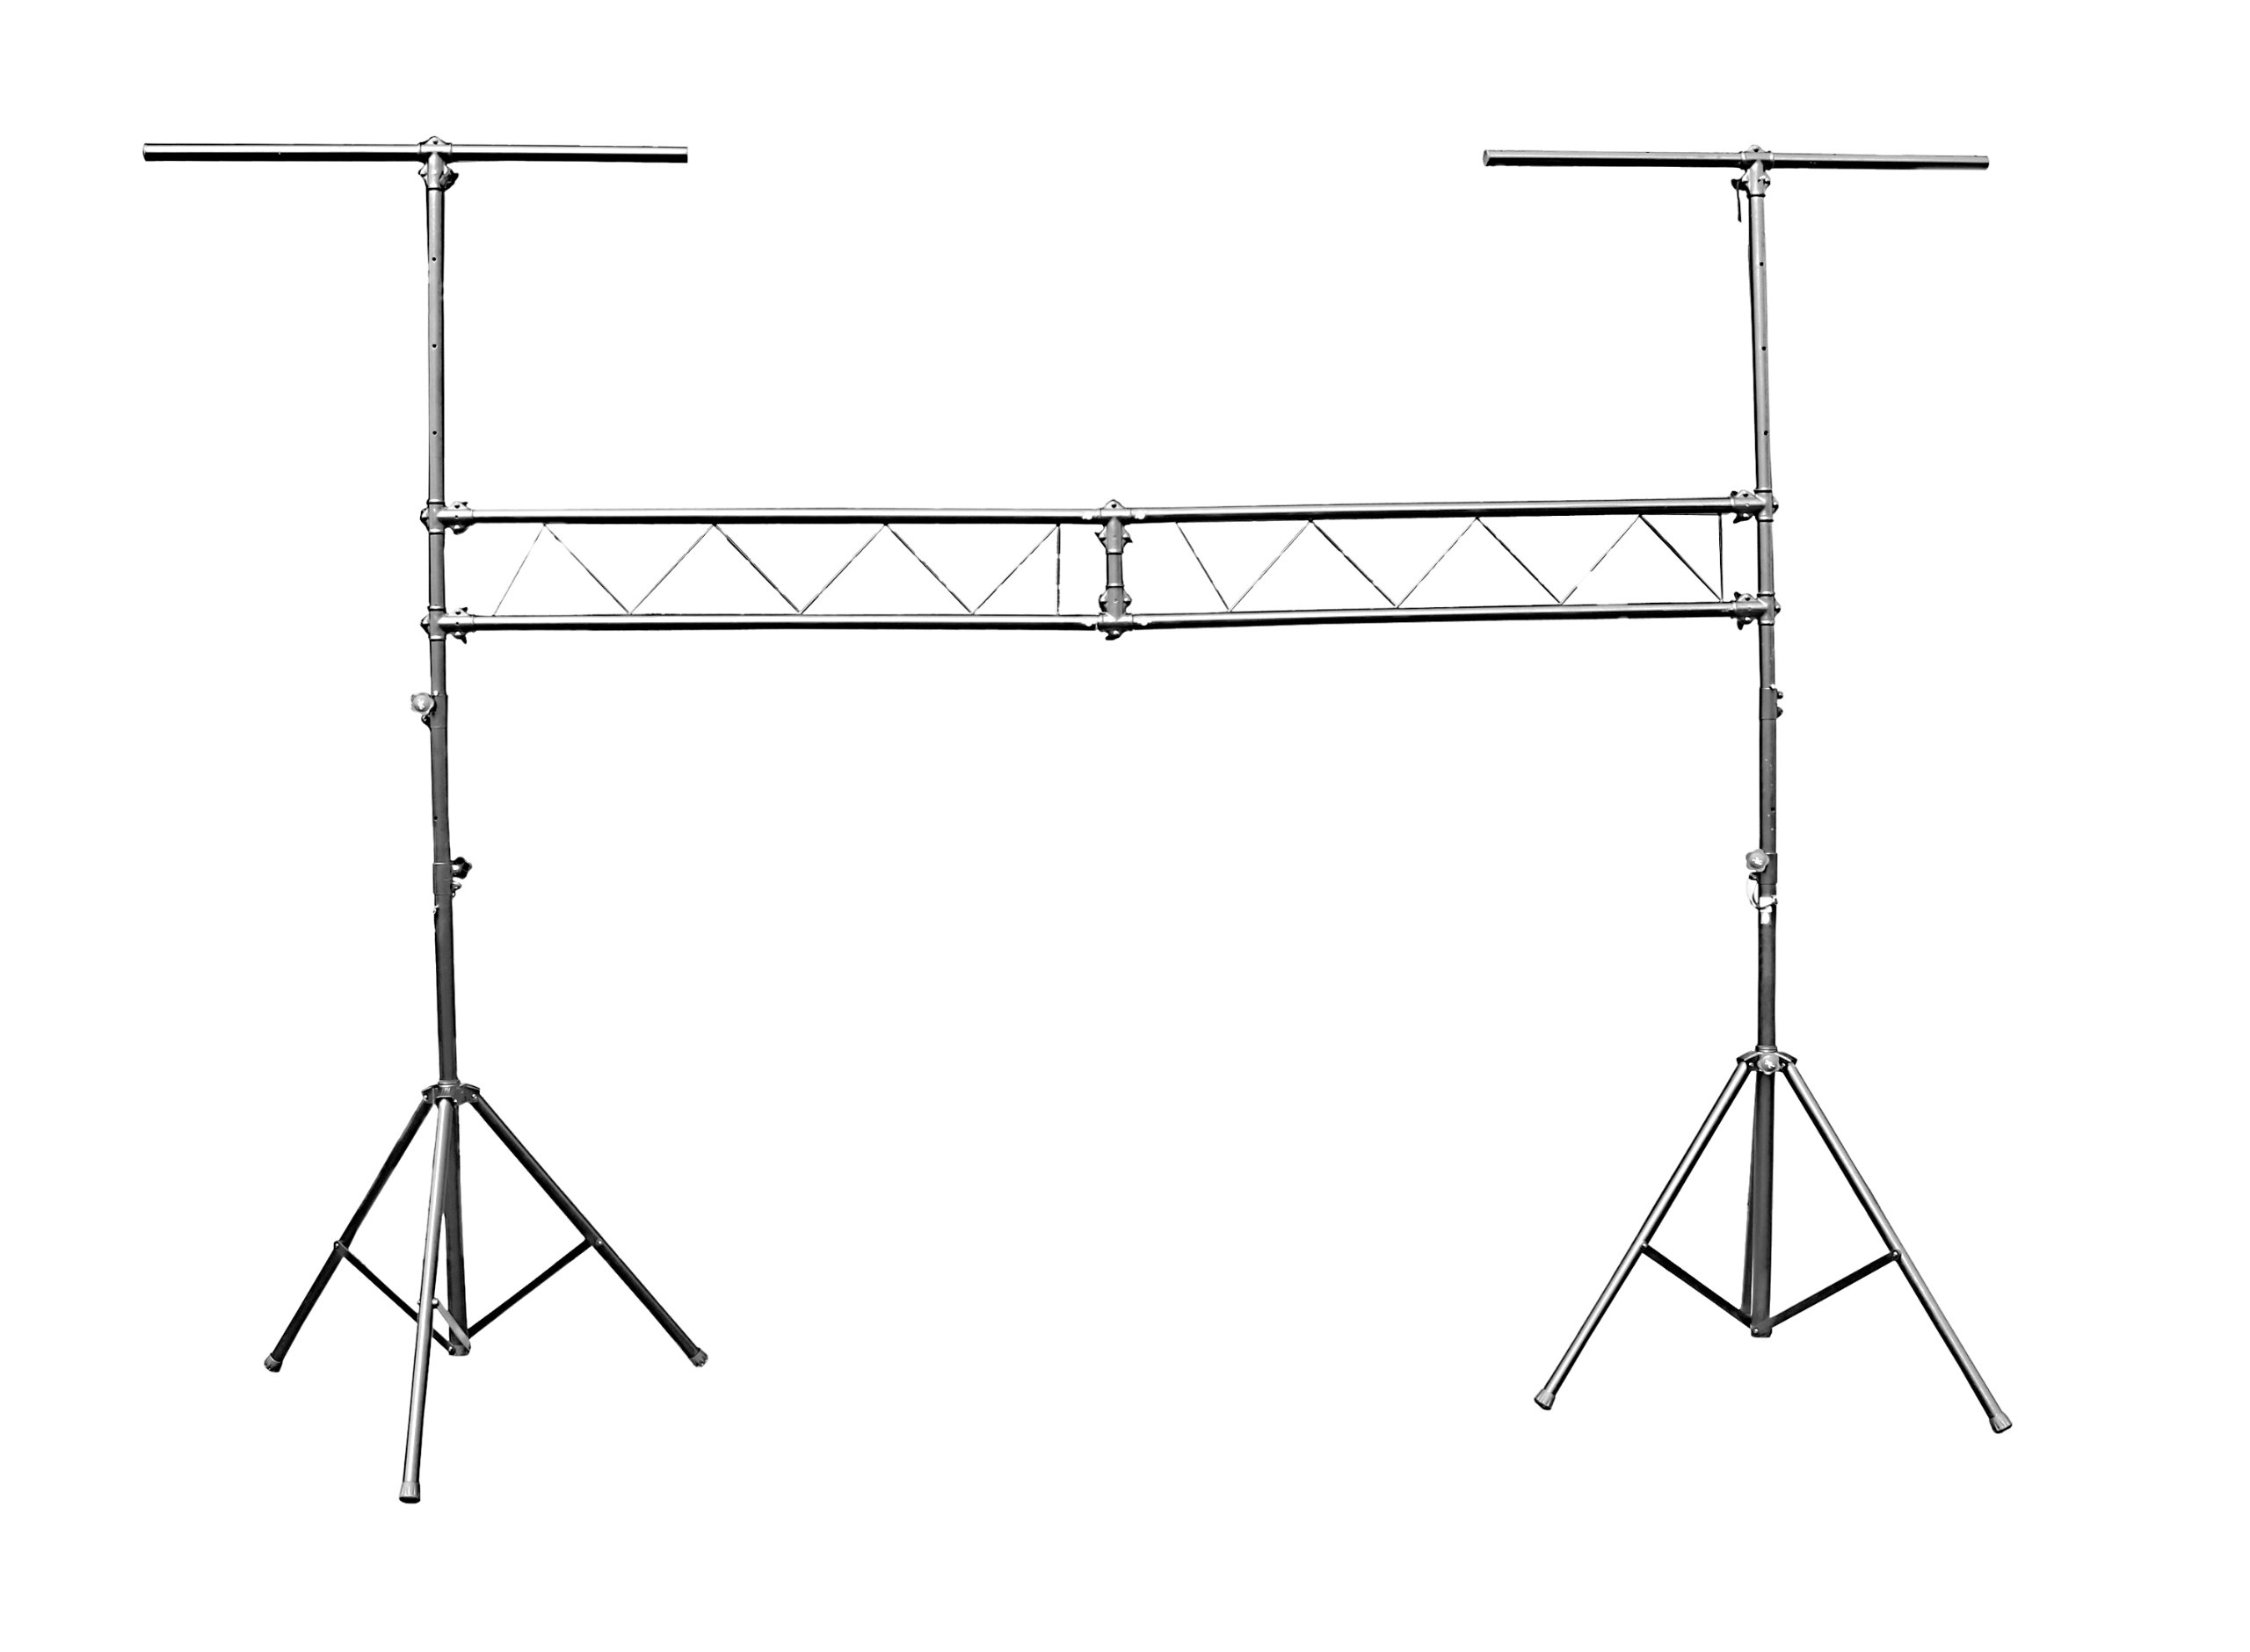 DJ Lighting 10ft Truss Stand All Metal Trussing System Prox Stands High Quality Easy to Setup Holds 200 Lbs by Pro X